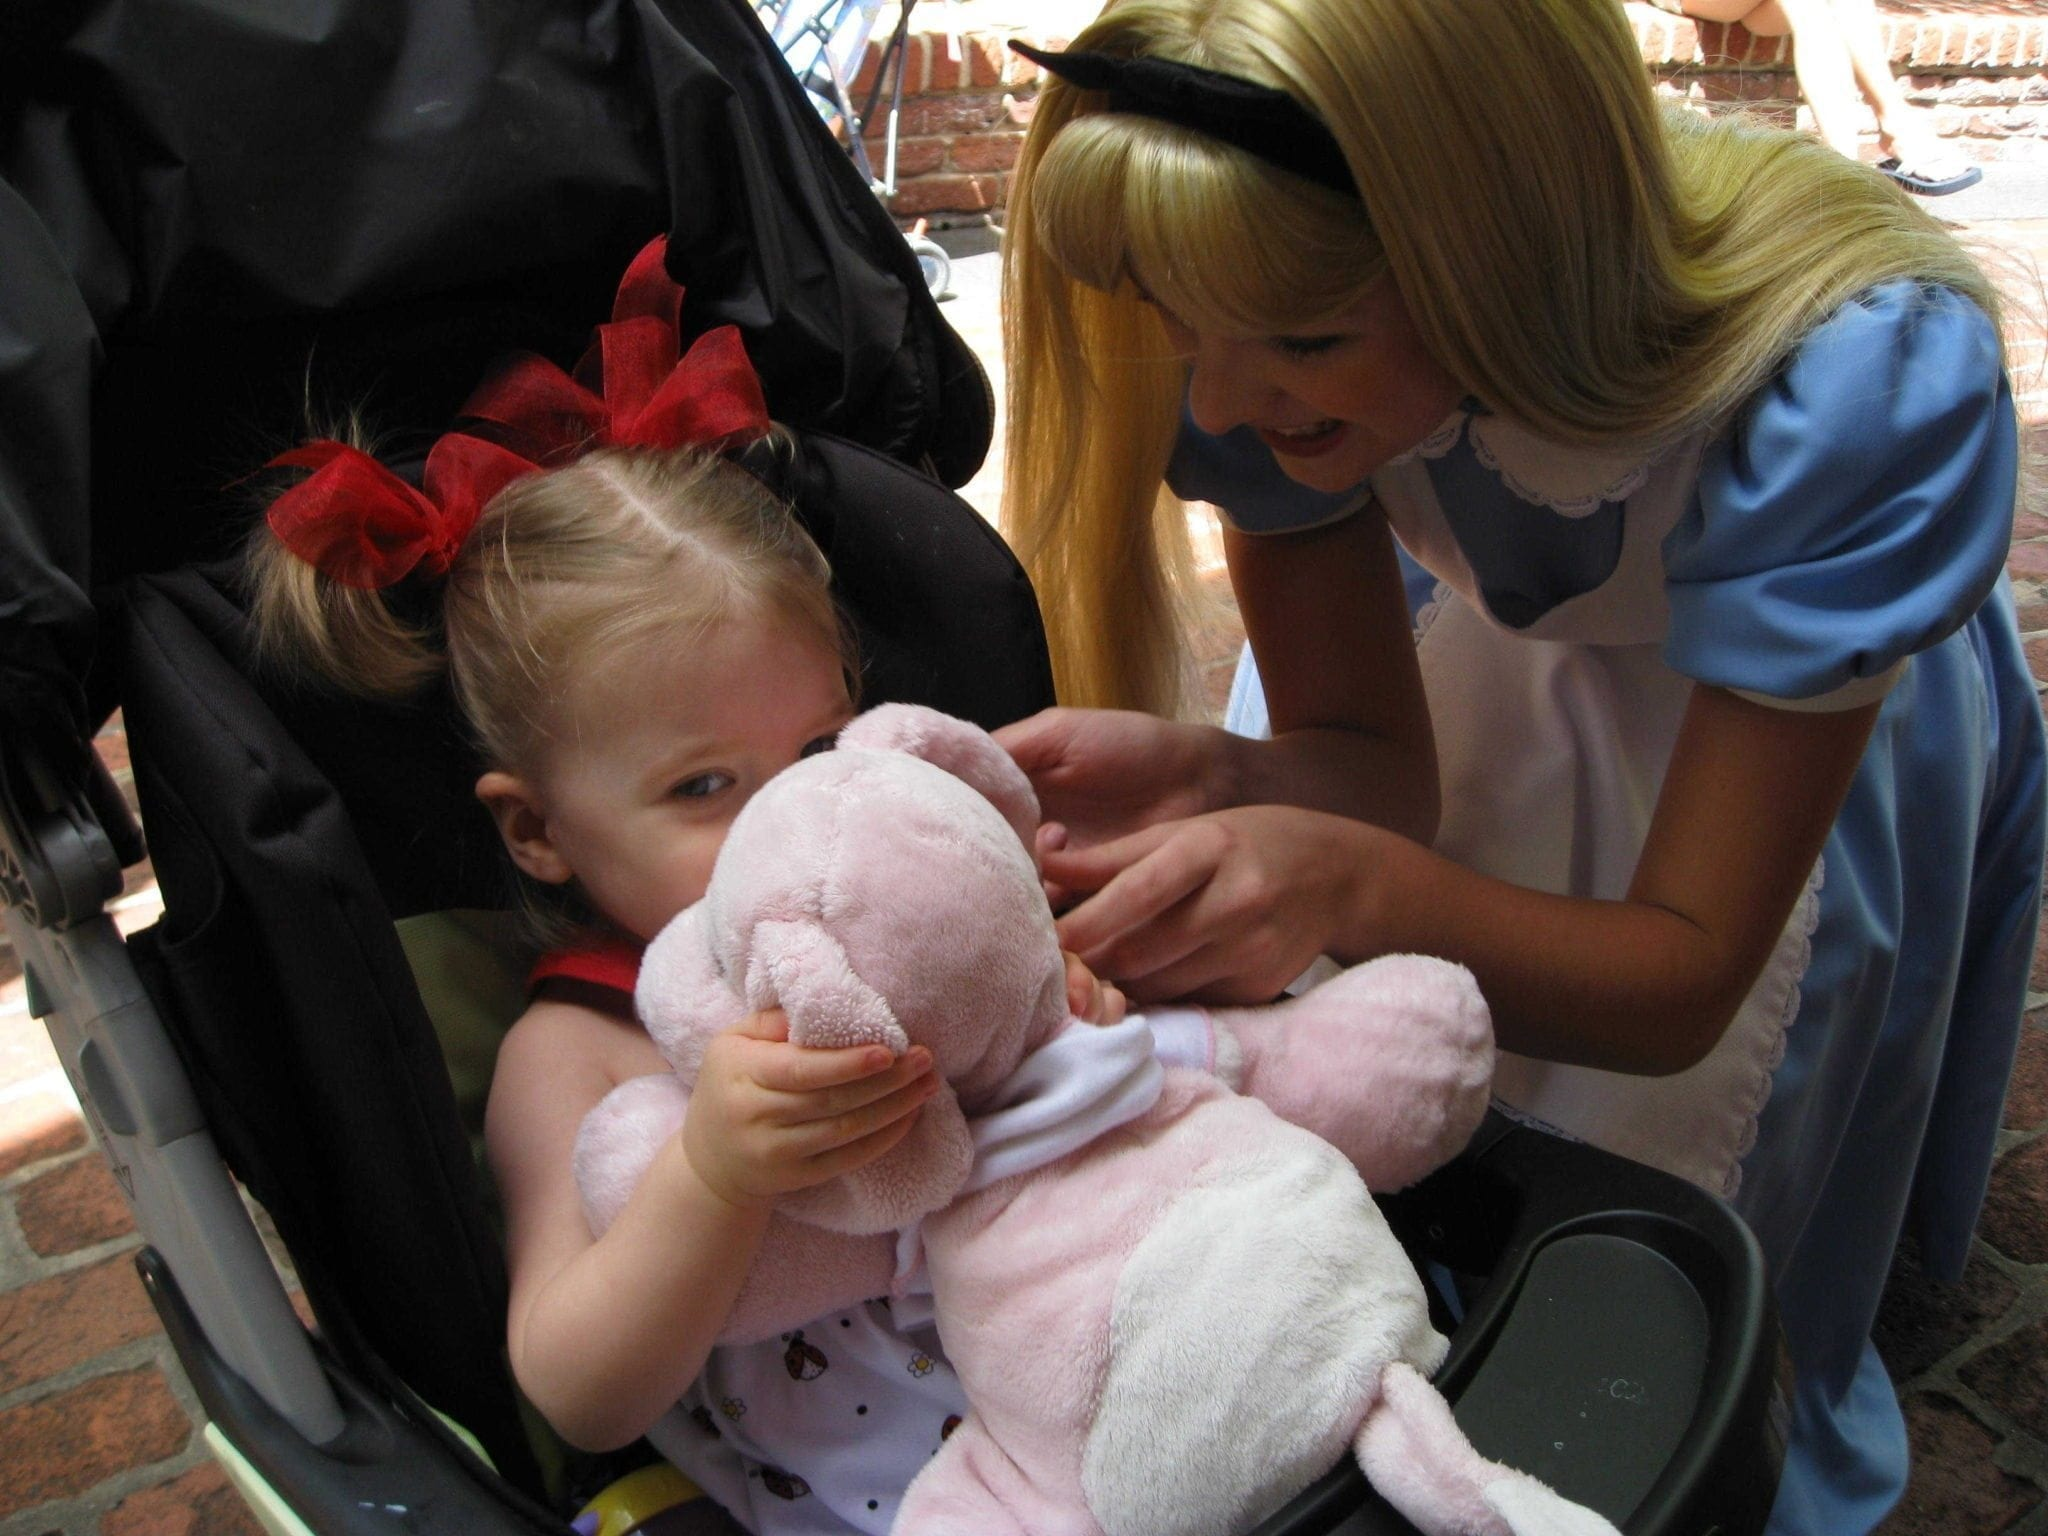 Meeting characters at Disney. Where to go for quiet at Disney, how to keep a husband happy on vacation and other funny tips for Disney vacations!